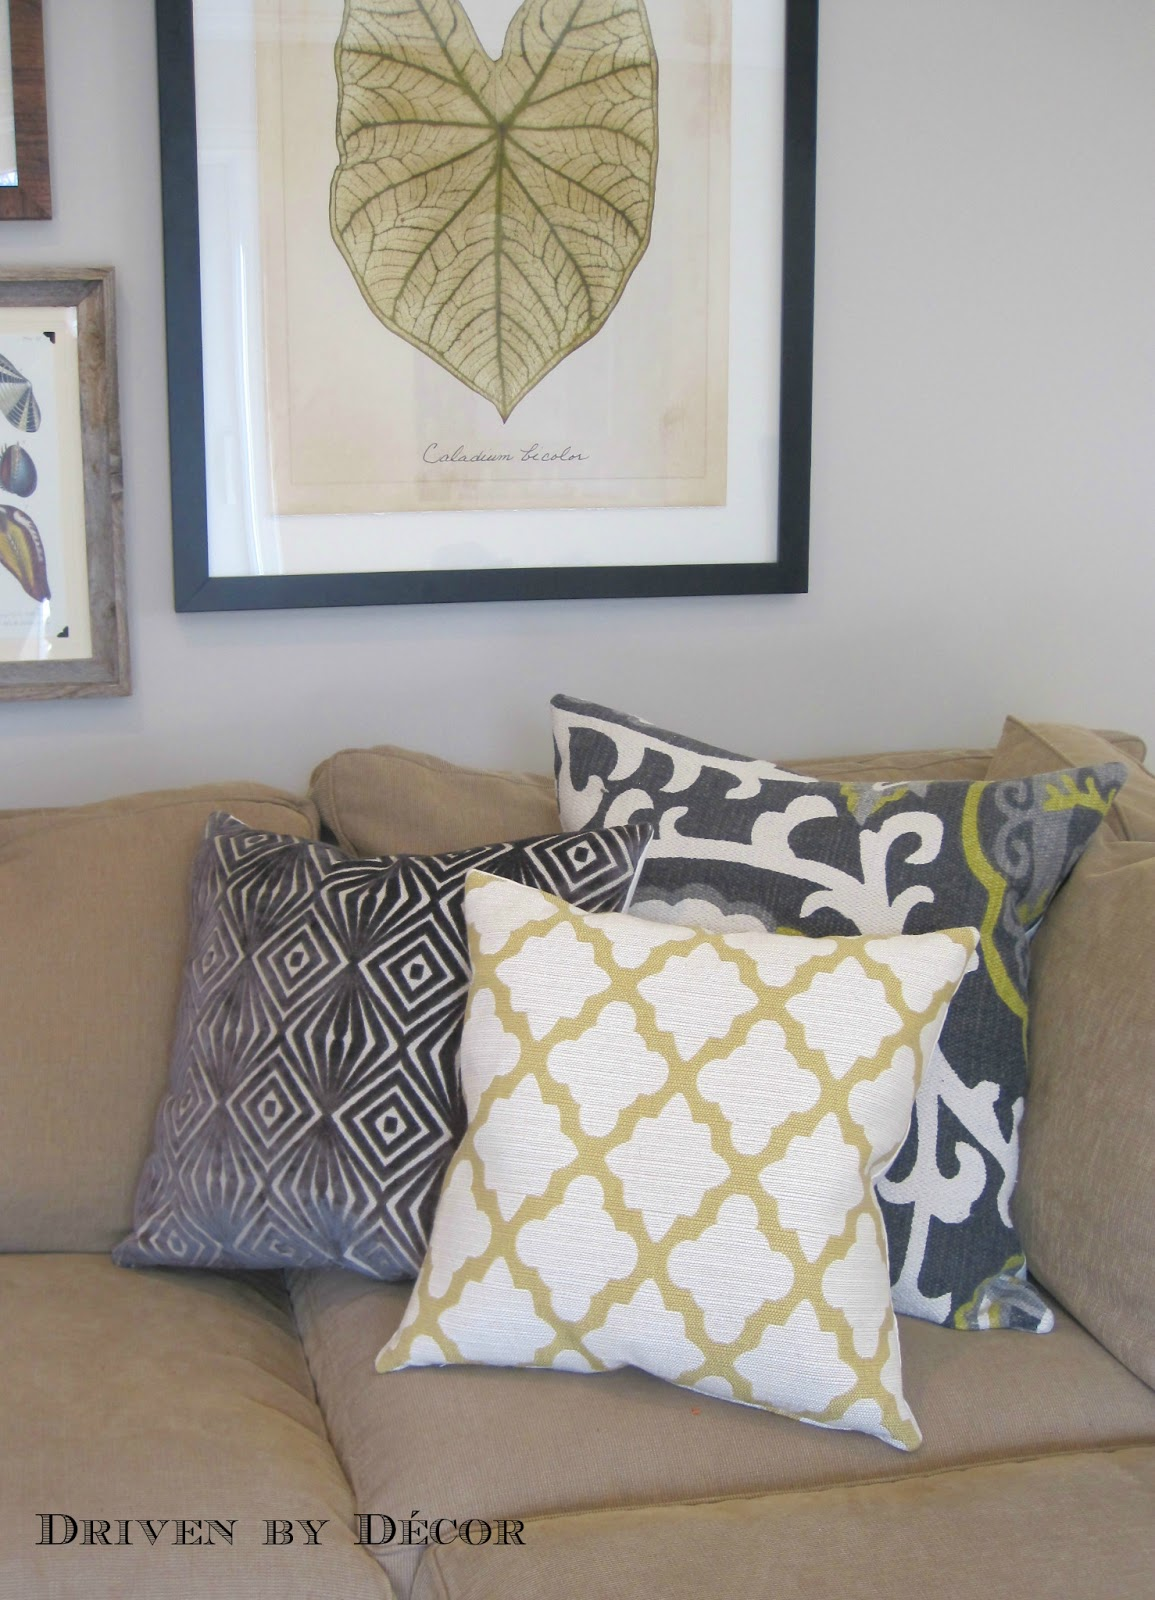 Pillow Cover Giveaway from Pillow Flight! Driven by Decor